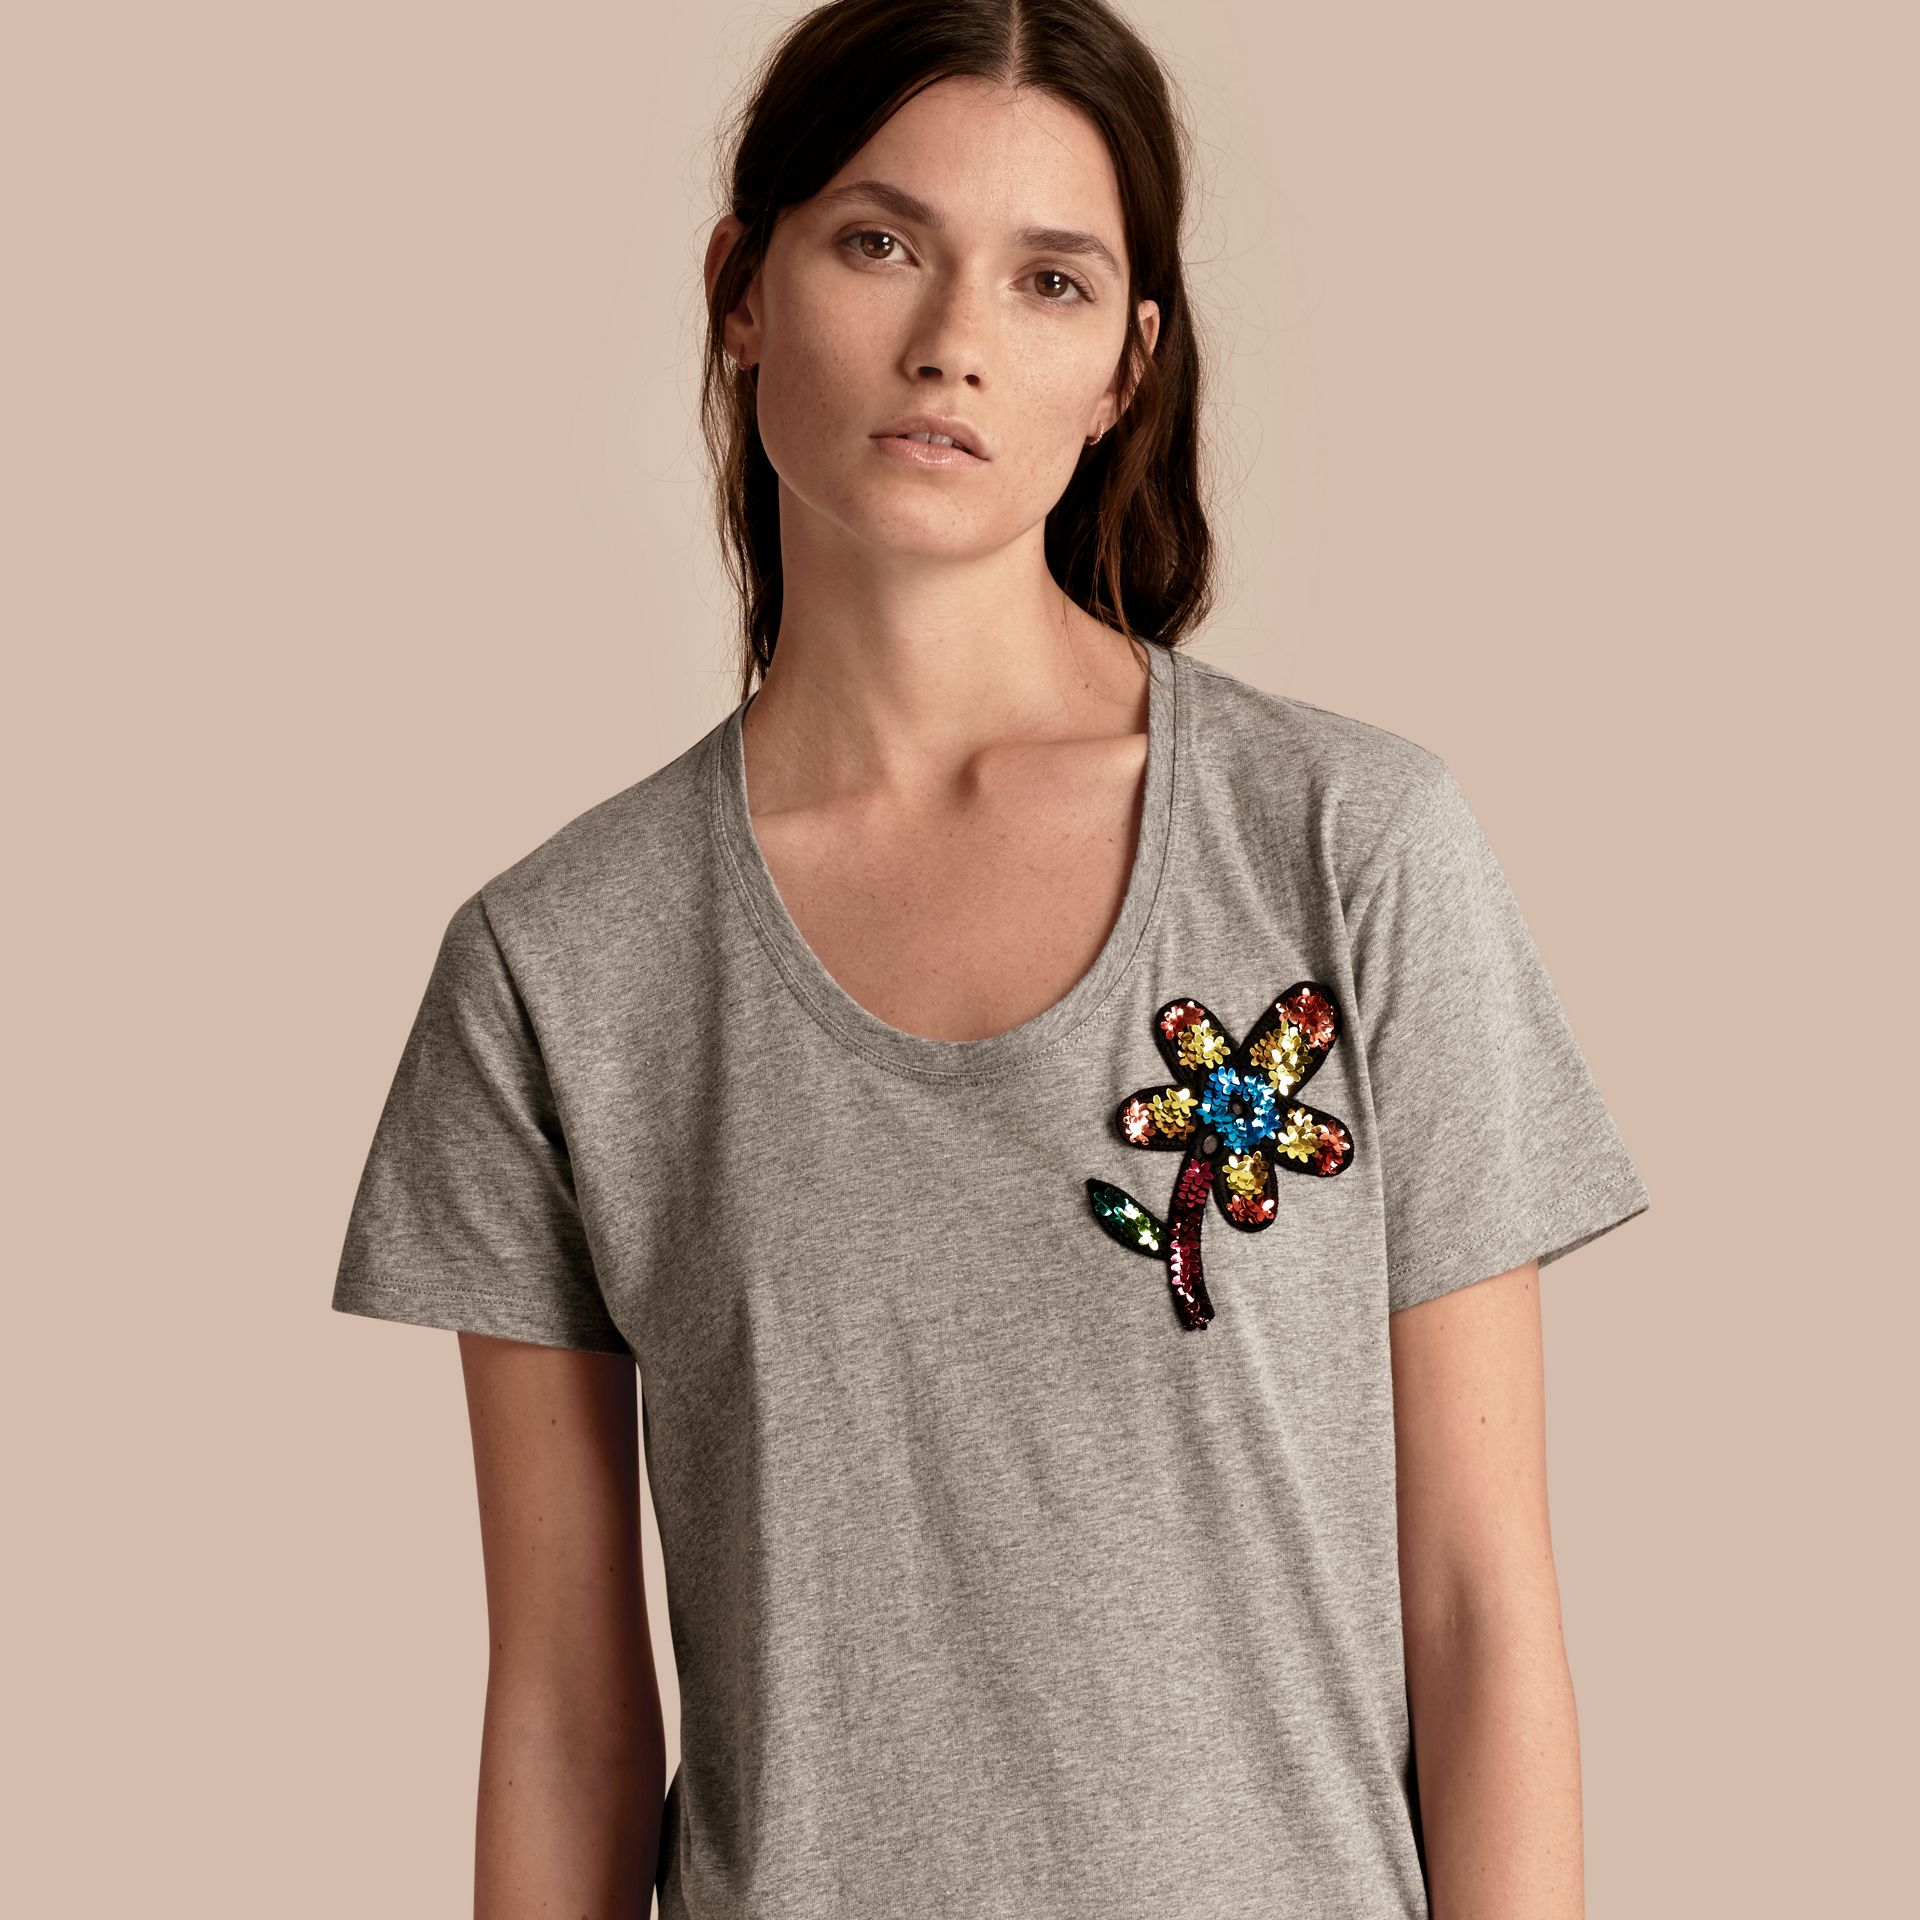 Pale grey melange Sequin Floral Appliqué Cotton T-Shirt Pale Grey Melange - gallery image 1